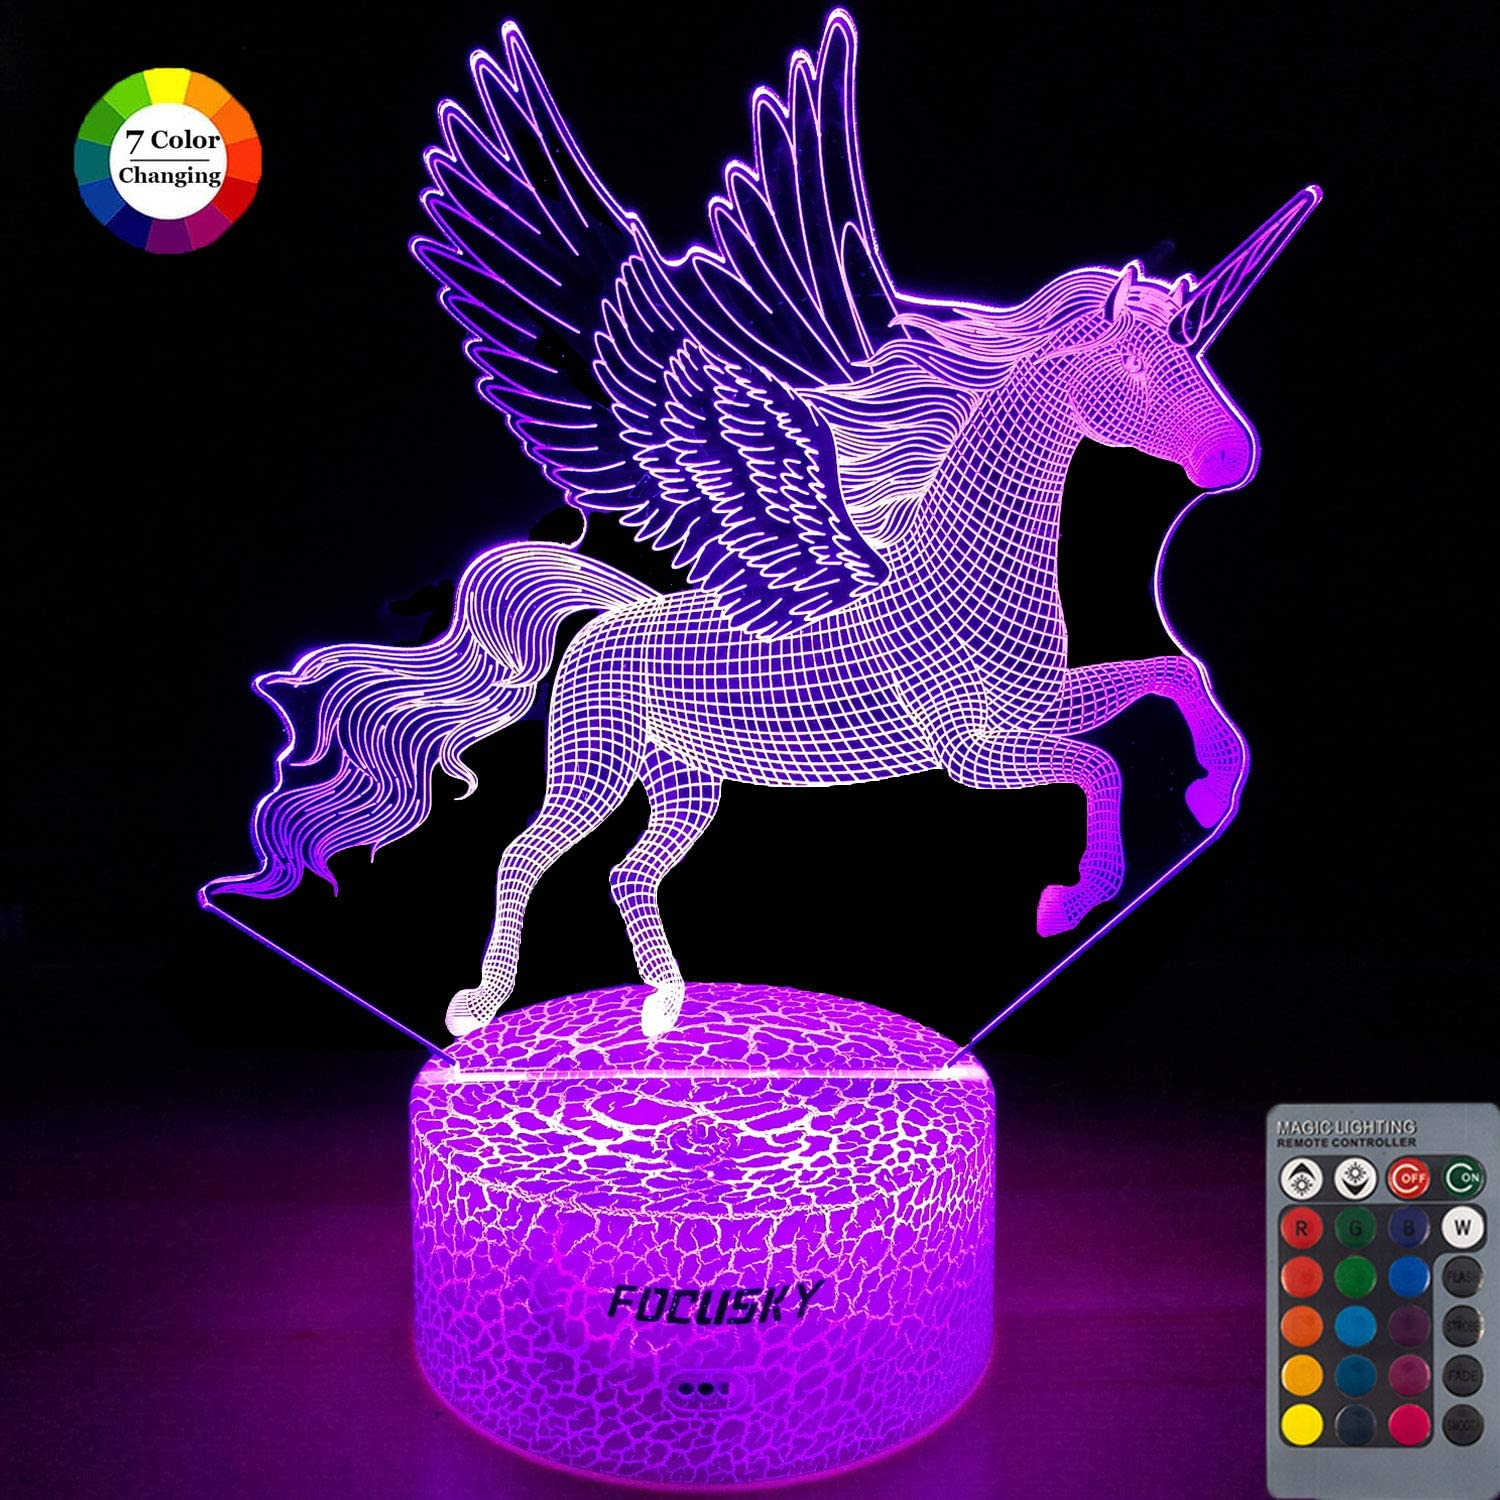 Unicorn Night Light for Kids,Dimmable LED Nightlight Bedside Lamp,16 Colors+7 Colors Changing,Touch&Remote Control,Best Unicorn Toys Birthday Christmas Gifts for Girls Boys (Unicorn) (Unicorn)